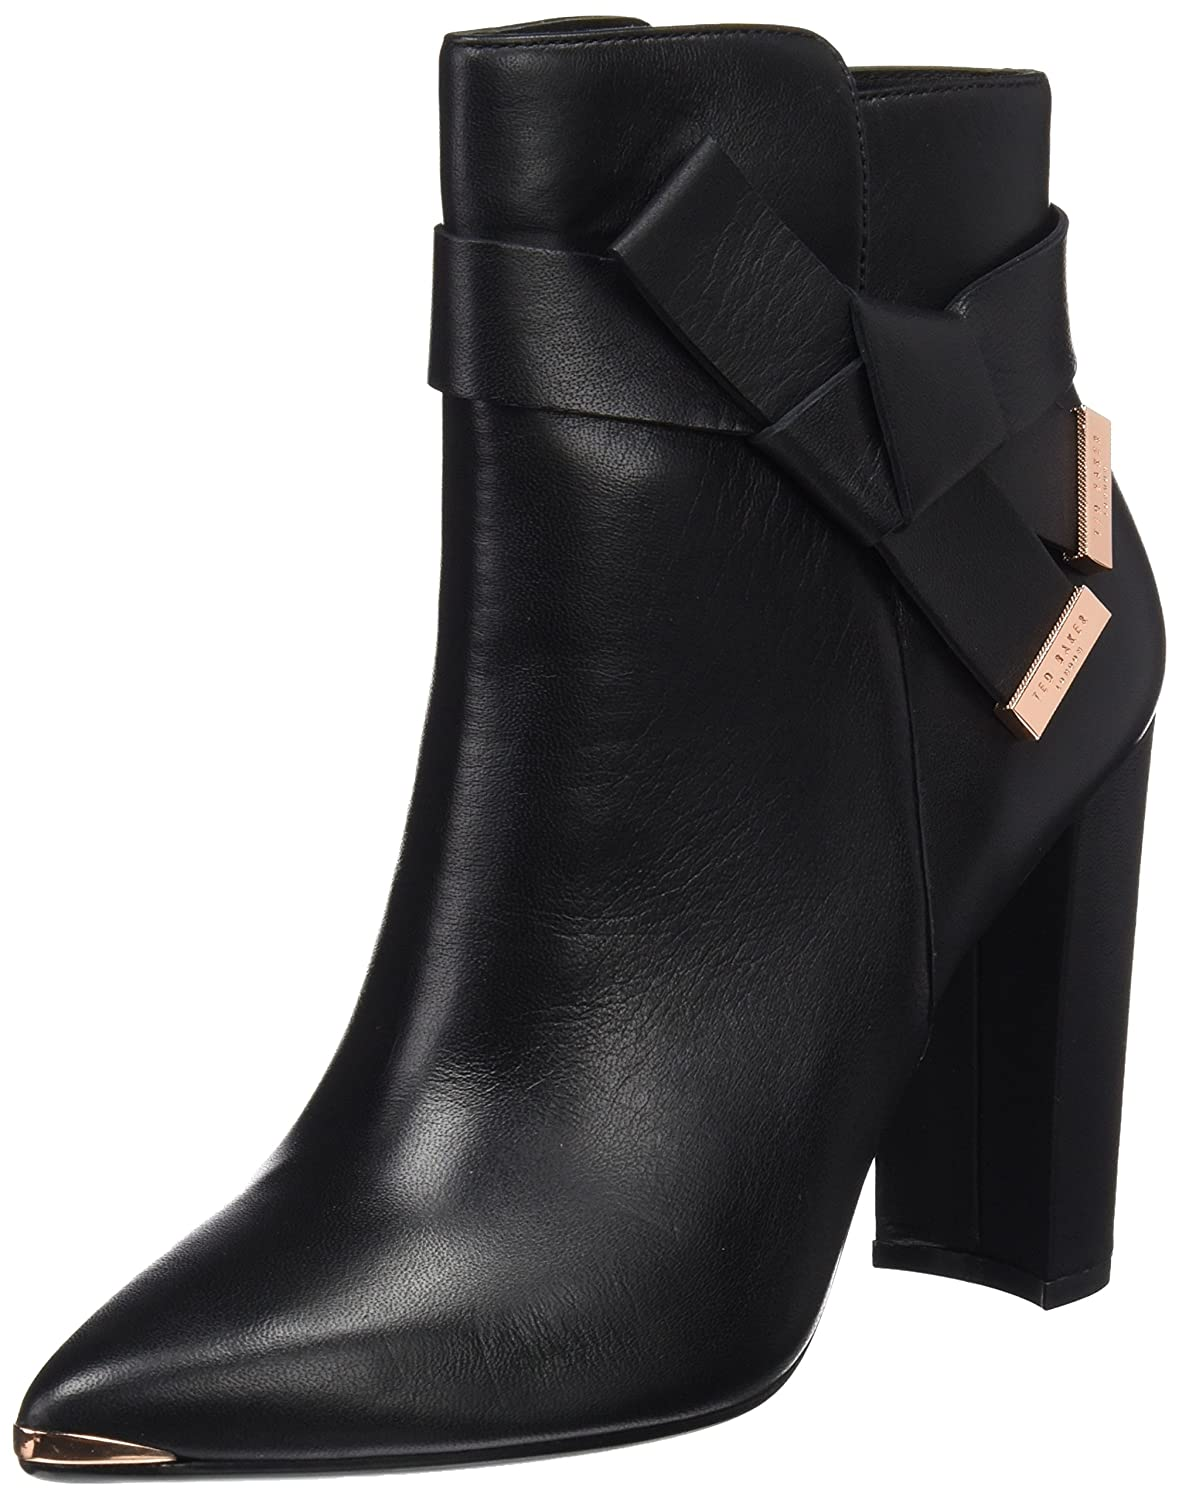 5a22a50957c Ted Baker Women's Remadi Ankle Boots